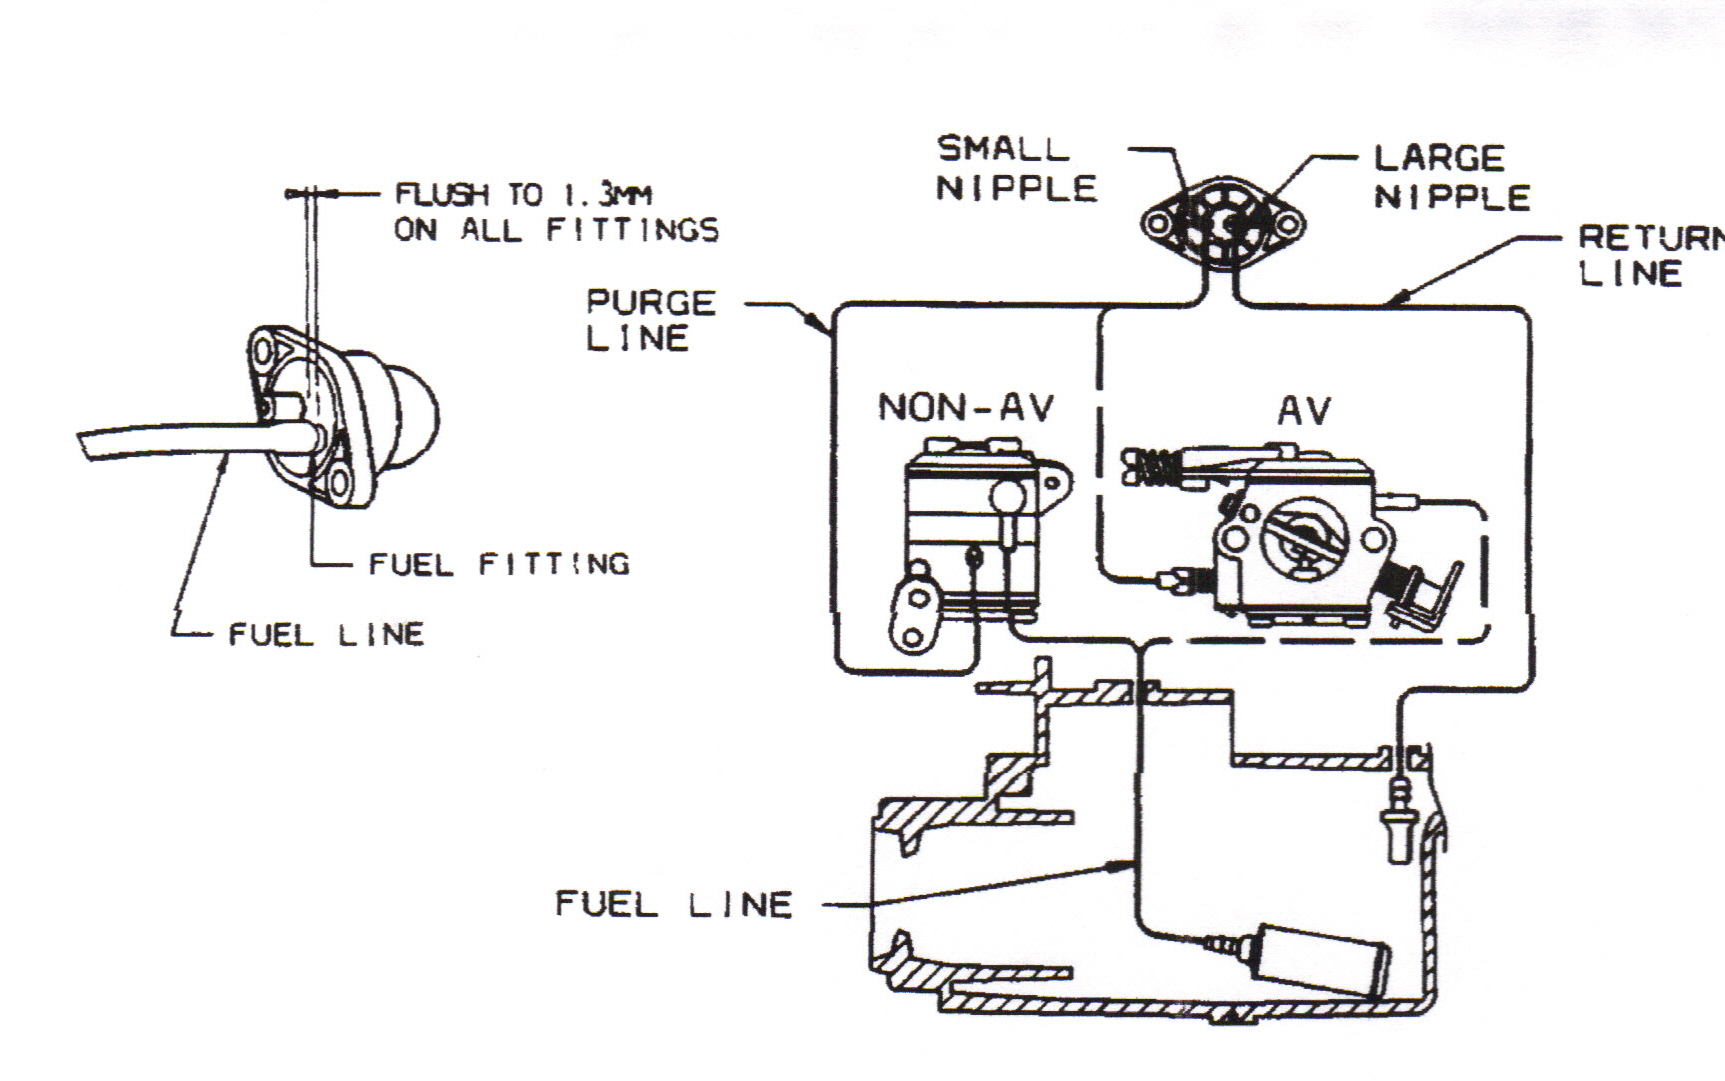 Need Instructions To Route Primer Bulb And Fuel Line On 51956 Toro Small Engine Filter Installation 8f071293 A010 449c 8dab 6588c9fb2142